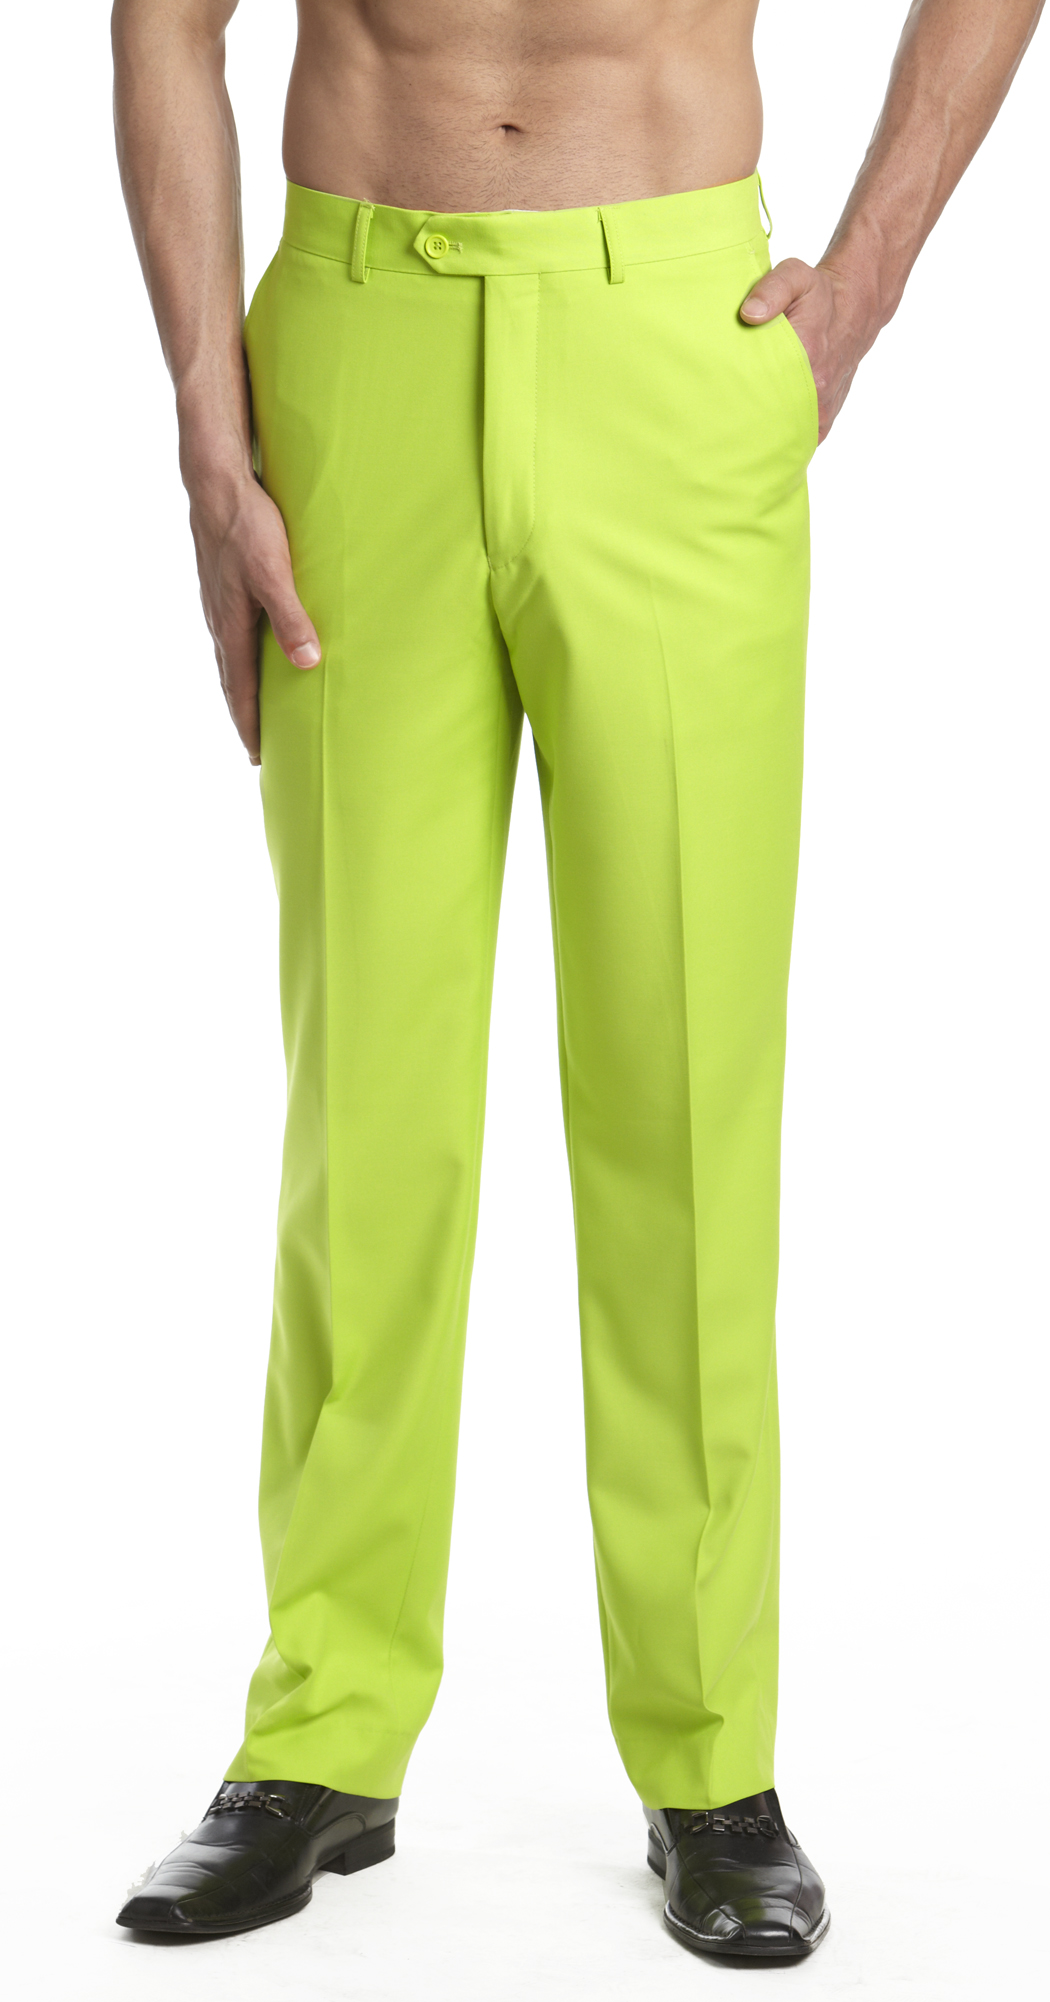 Shop for men's Pants, trousers & slacks online at jomp16.tk Browse the latest Pants styles for men from Jos. A Bank. FREE shipping on orders over $ Pants Dress it up or Dress it down. What makes a great pair of pants? Versatility. Add a stylish blazer to slacks or khakis for business. Pair with a casual collared shirt for a relaxed.